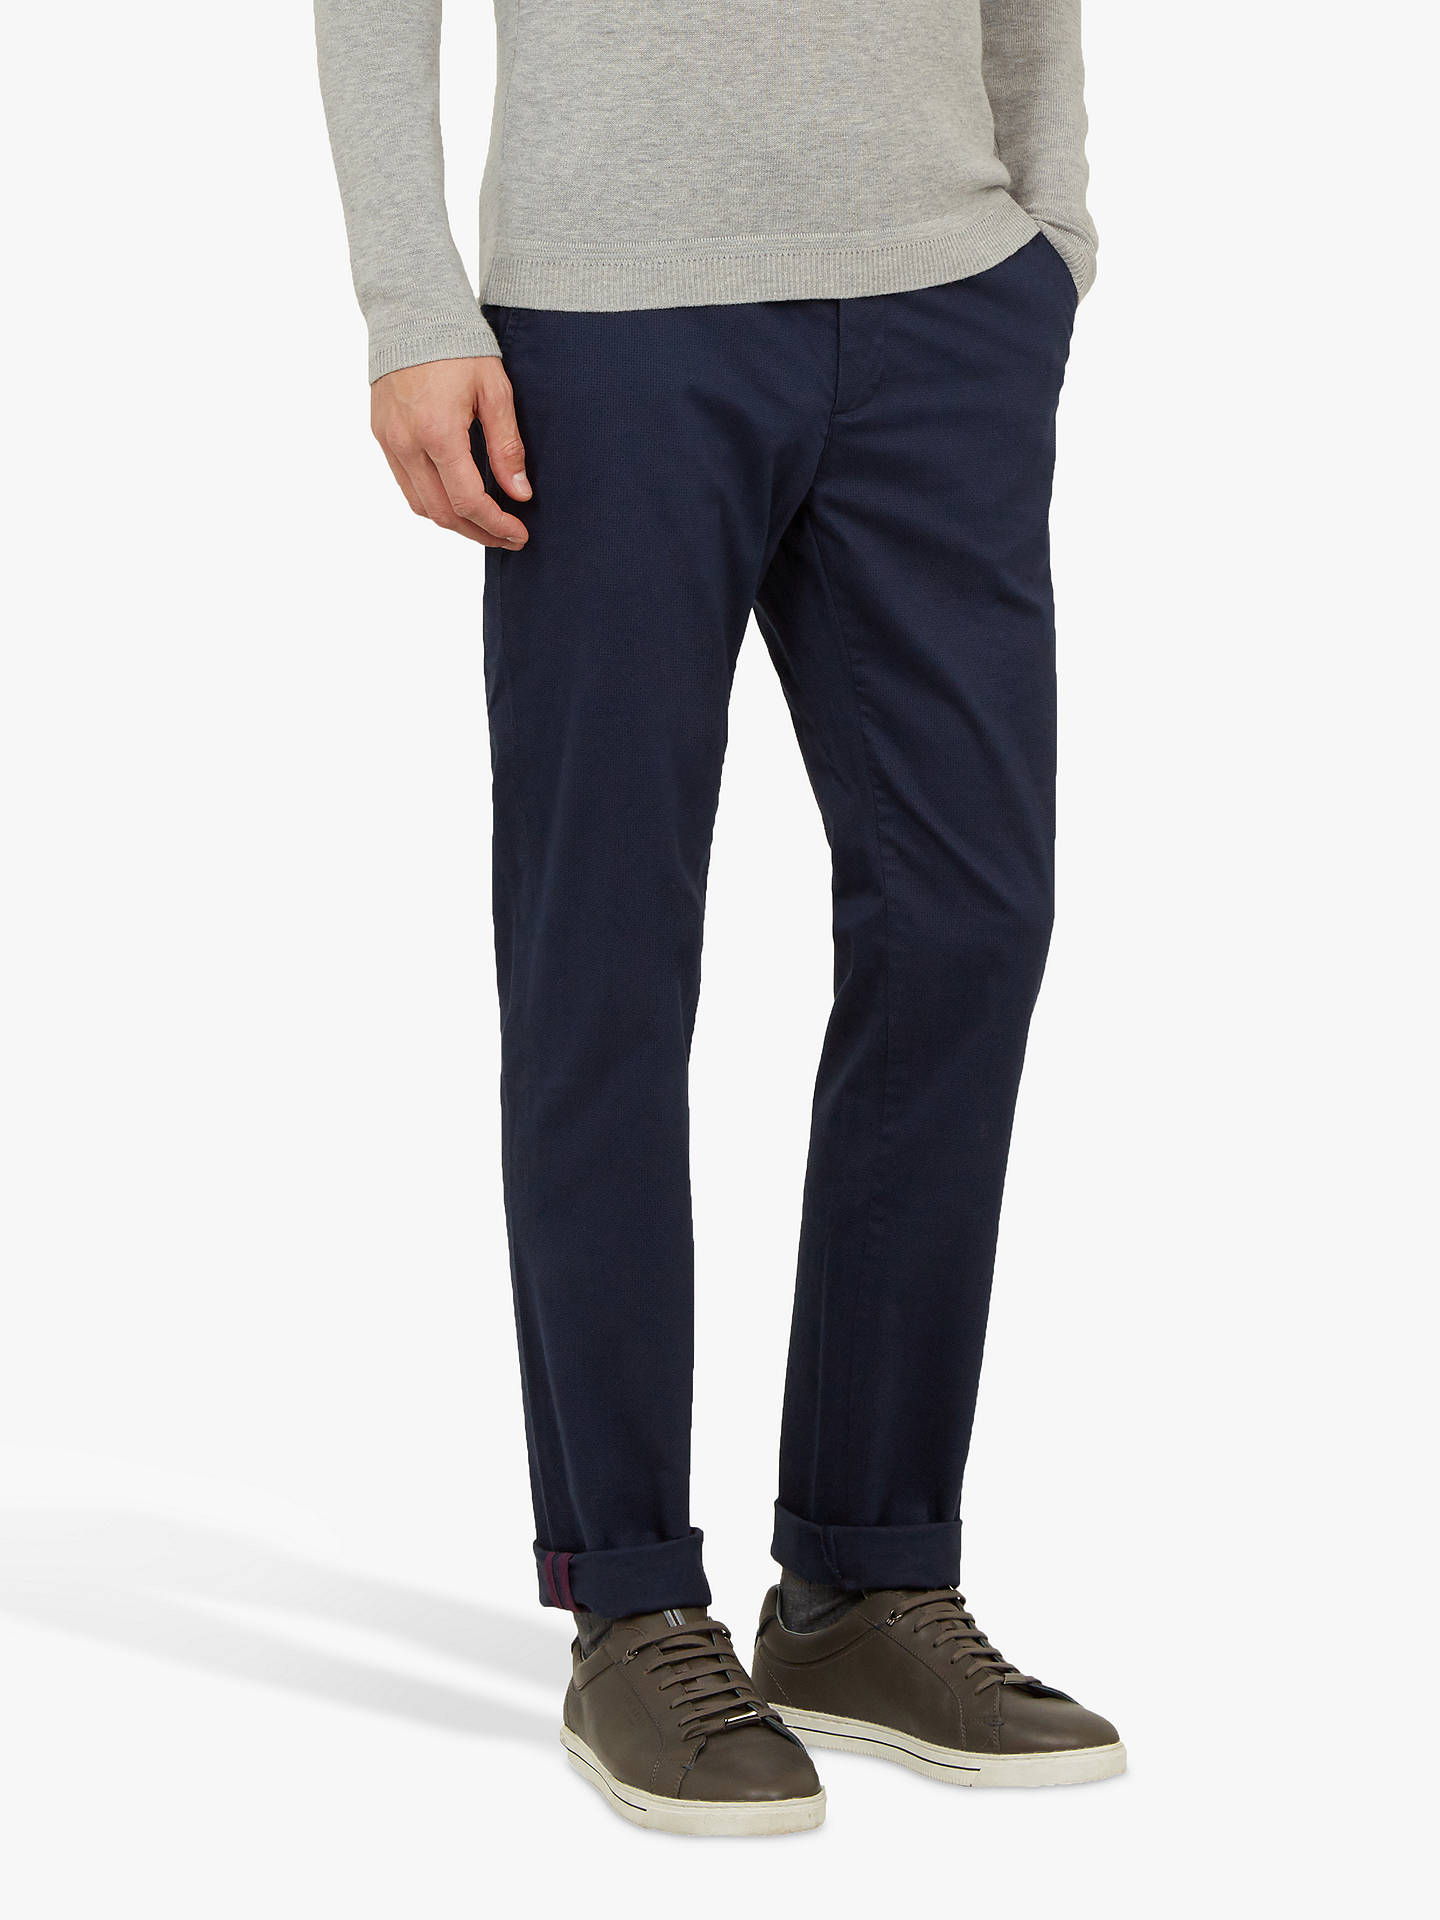 89320c5e2 Ted Baker Sladrid Slim Fit Printed Chinos at John Lewis   Partners